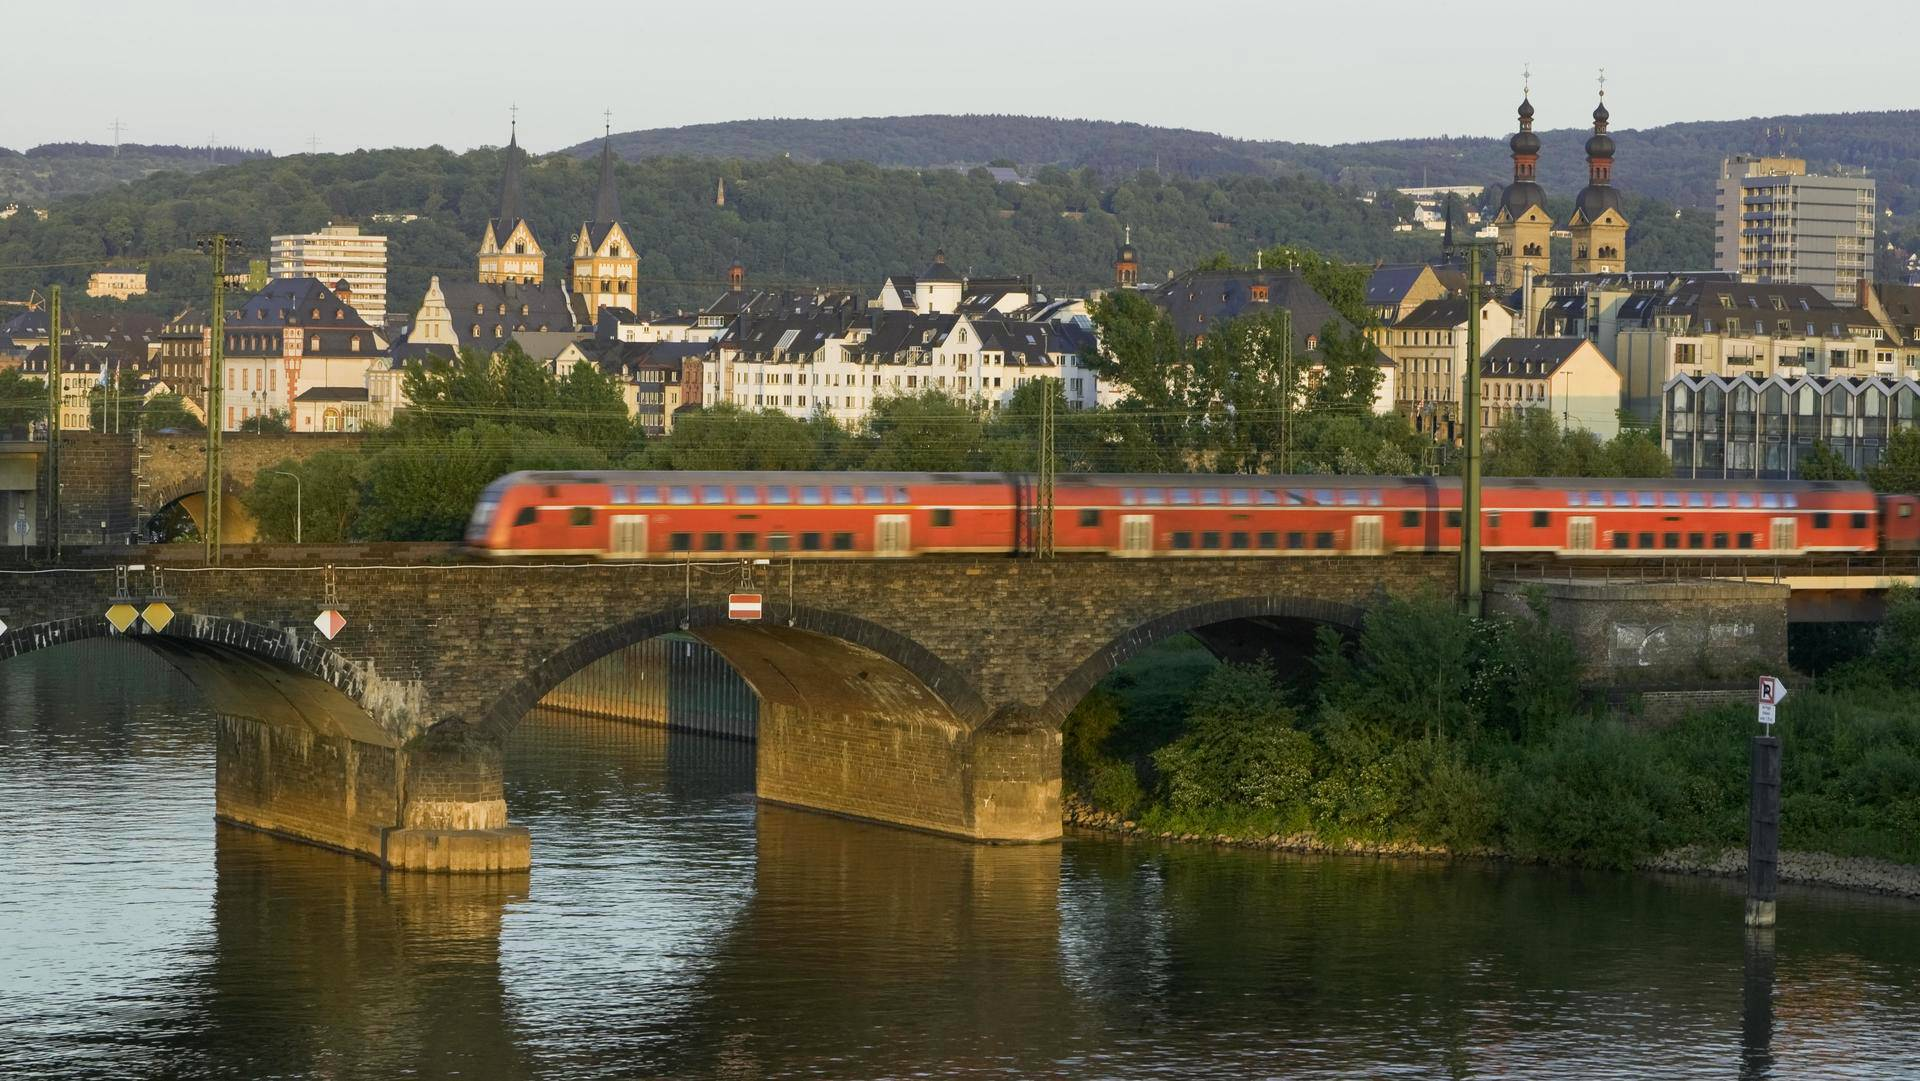 Germany, Koblenz, train crossing bridge over river with cityscape in background